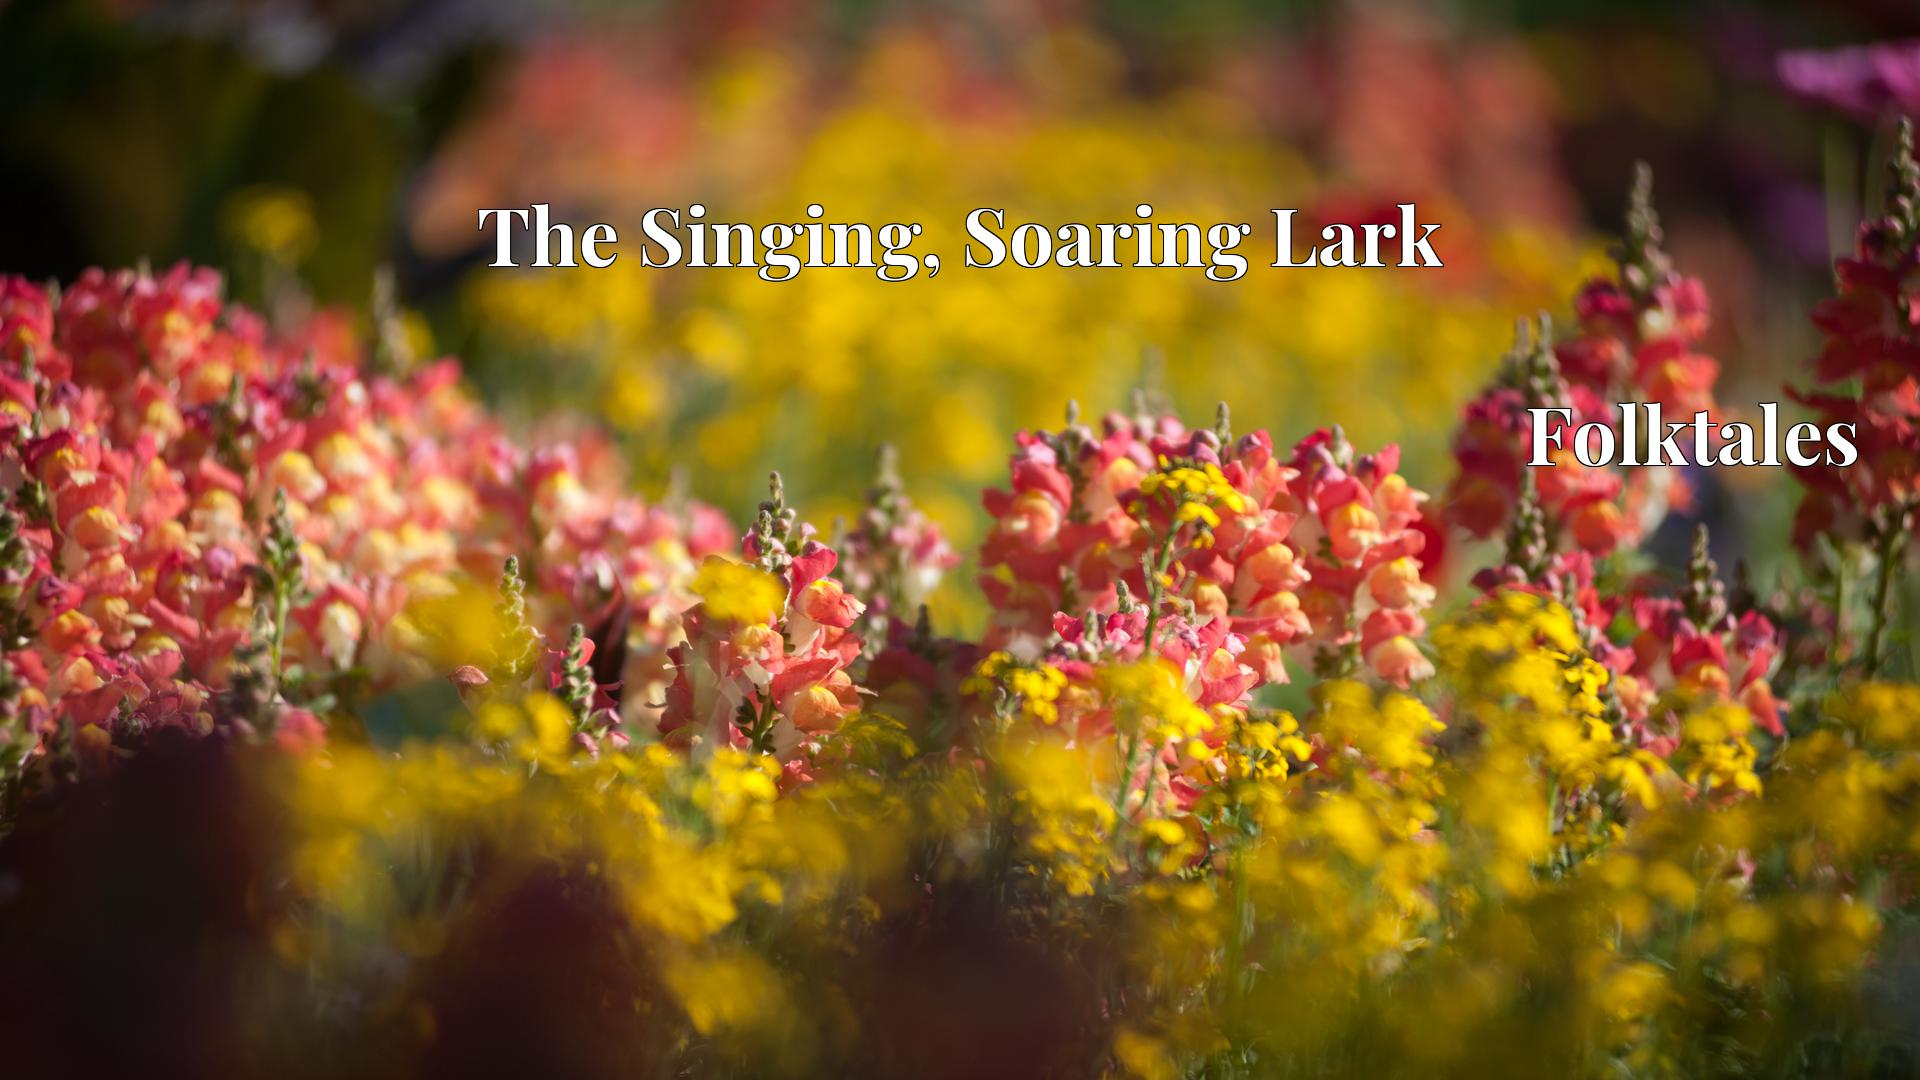 The Singing, Soaring Lark - Folktales